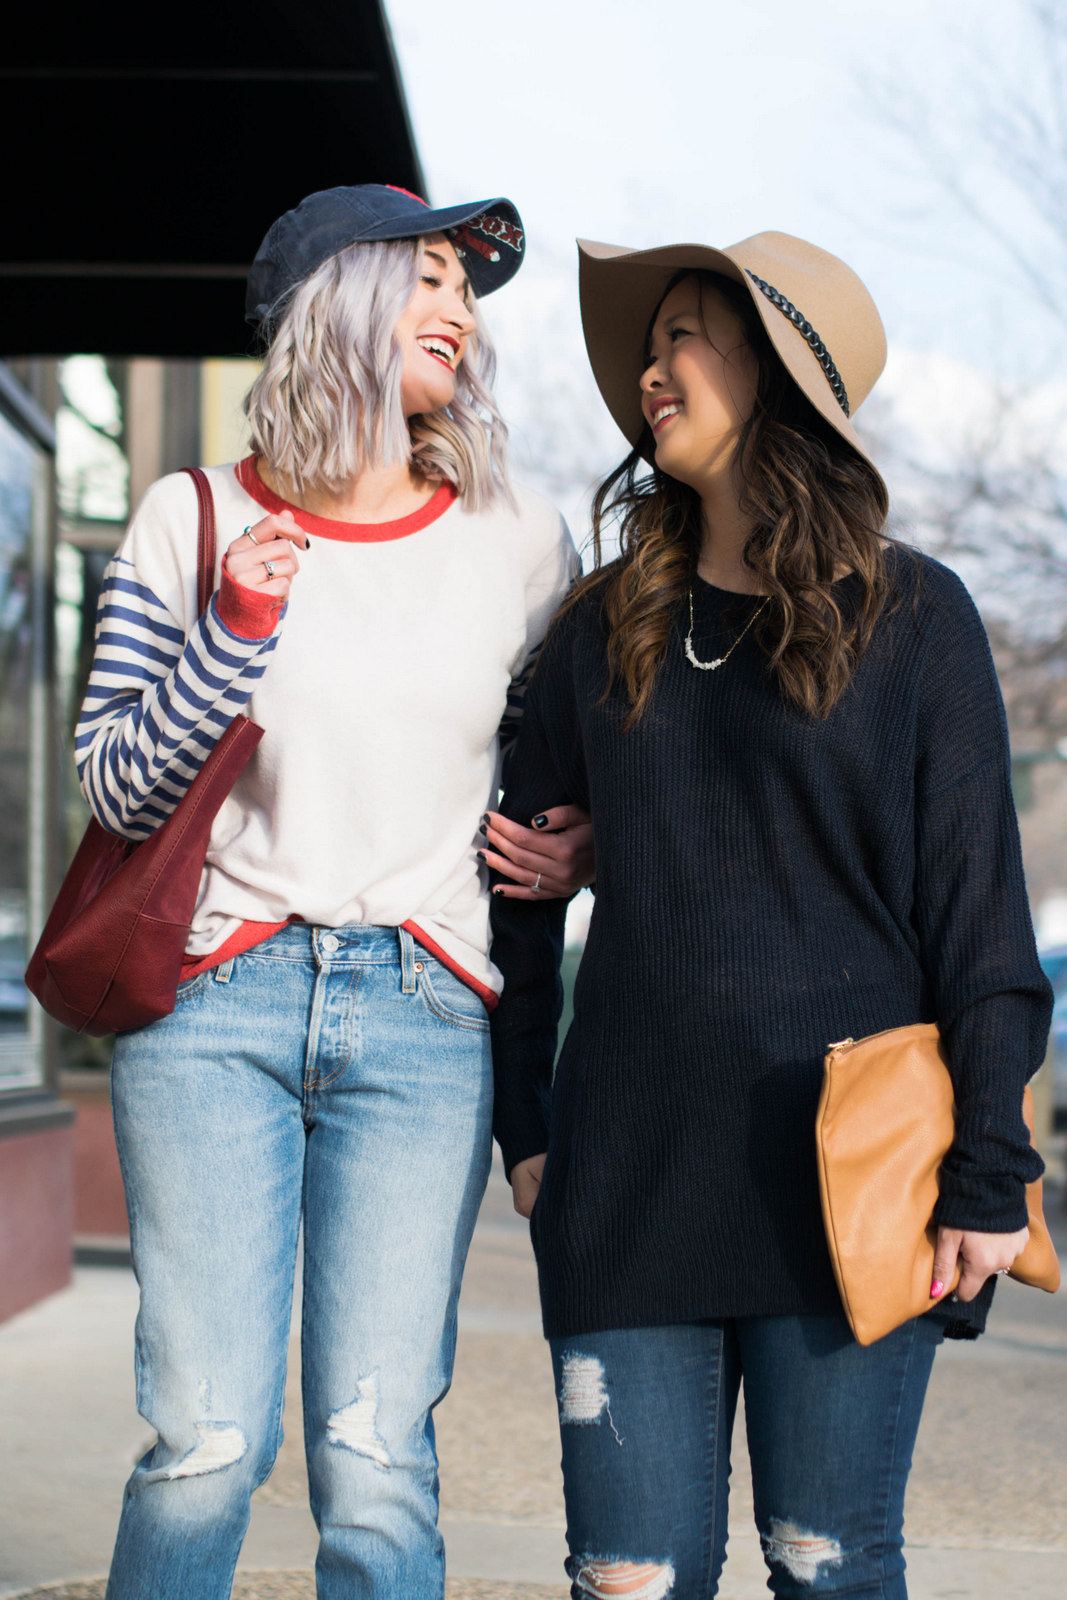 How to style hats two ways